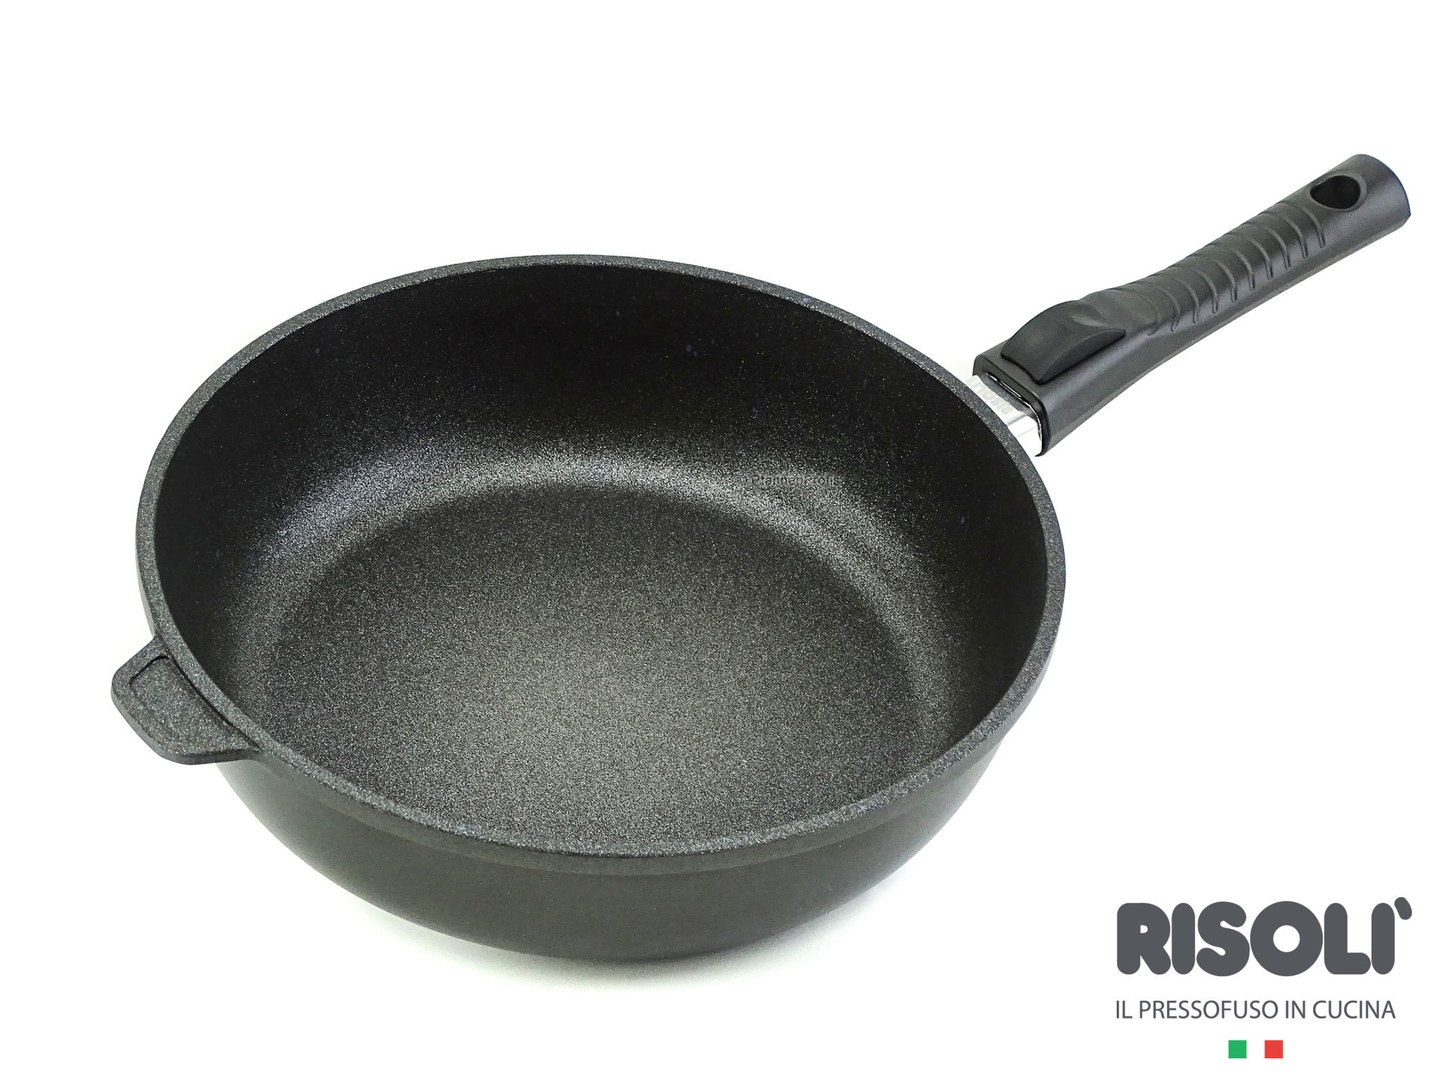 RISOLI cast aluminum deep fry pan BLACKplus induction 28 cm with detachable handle